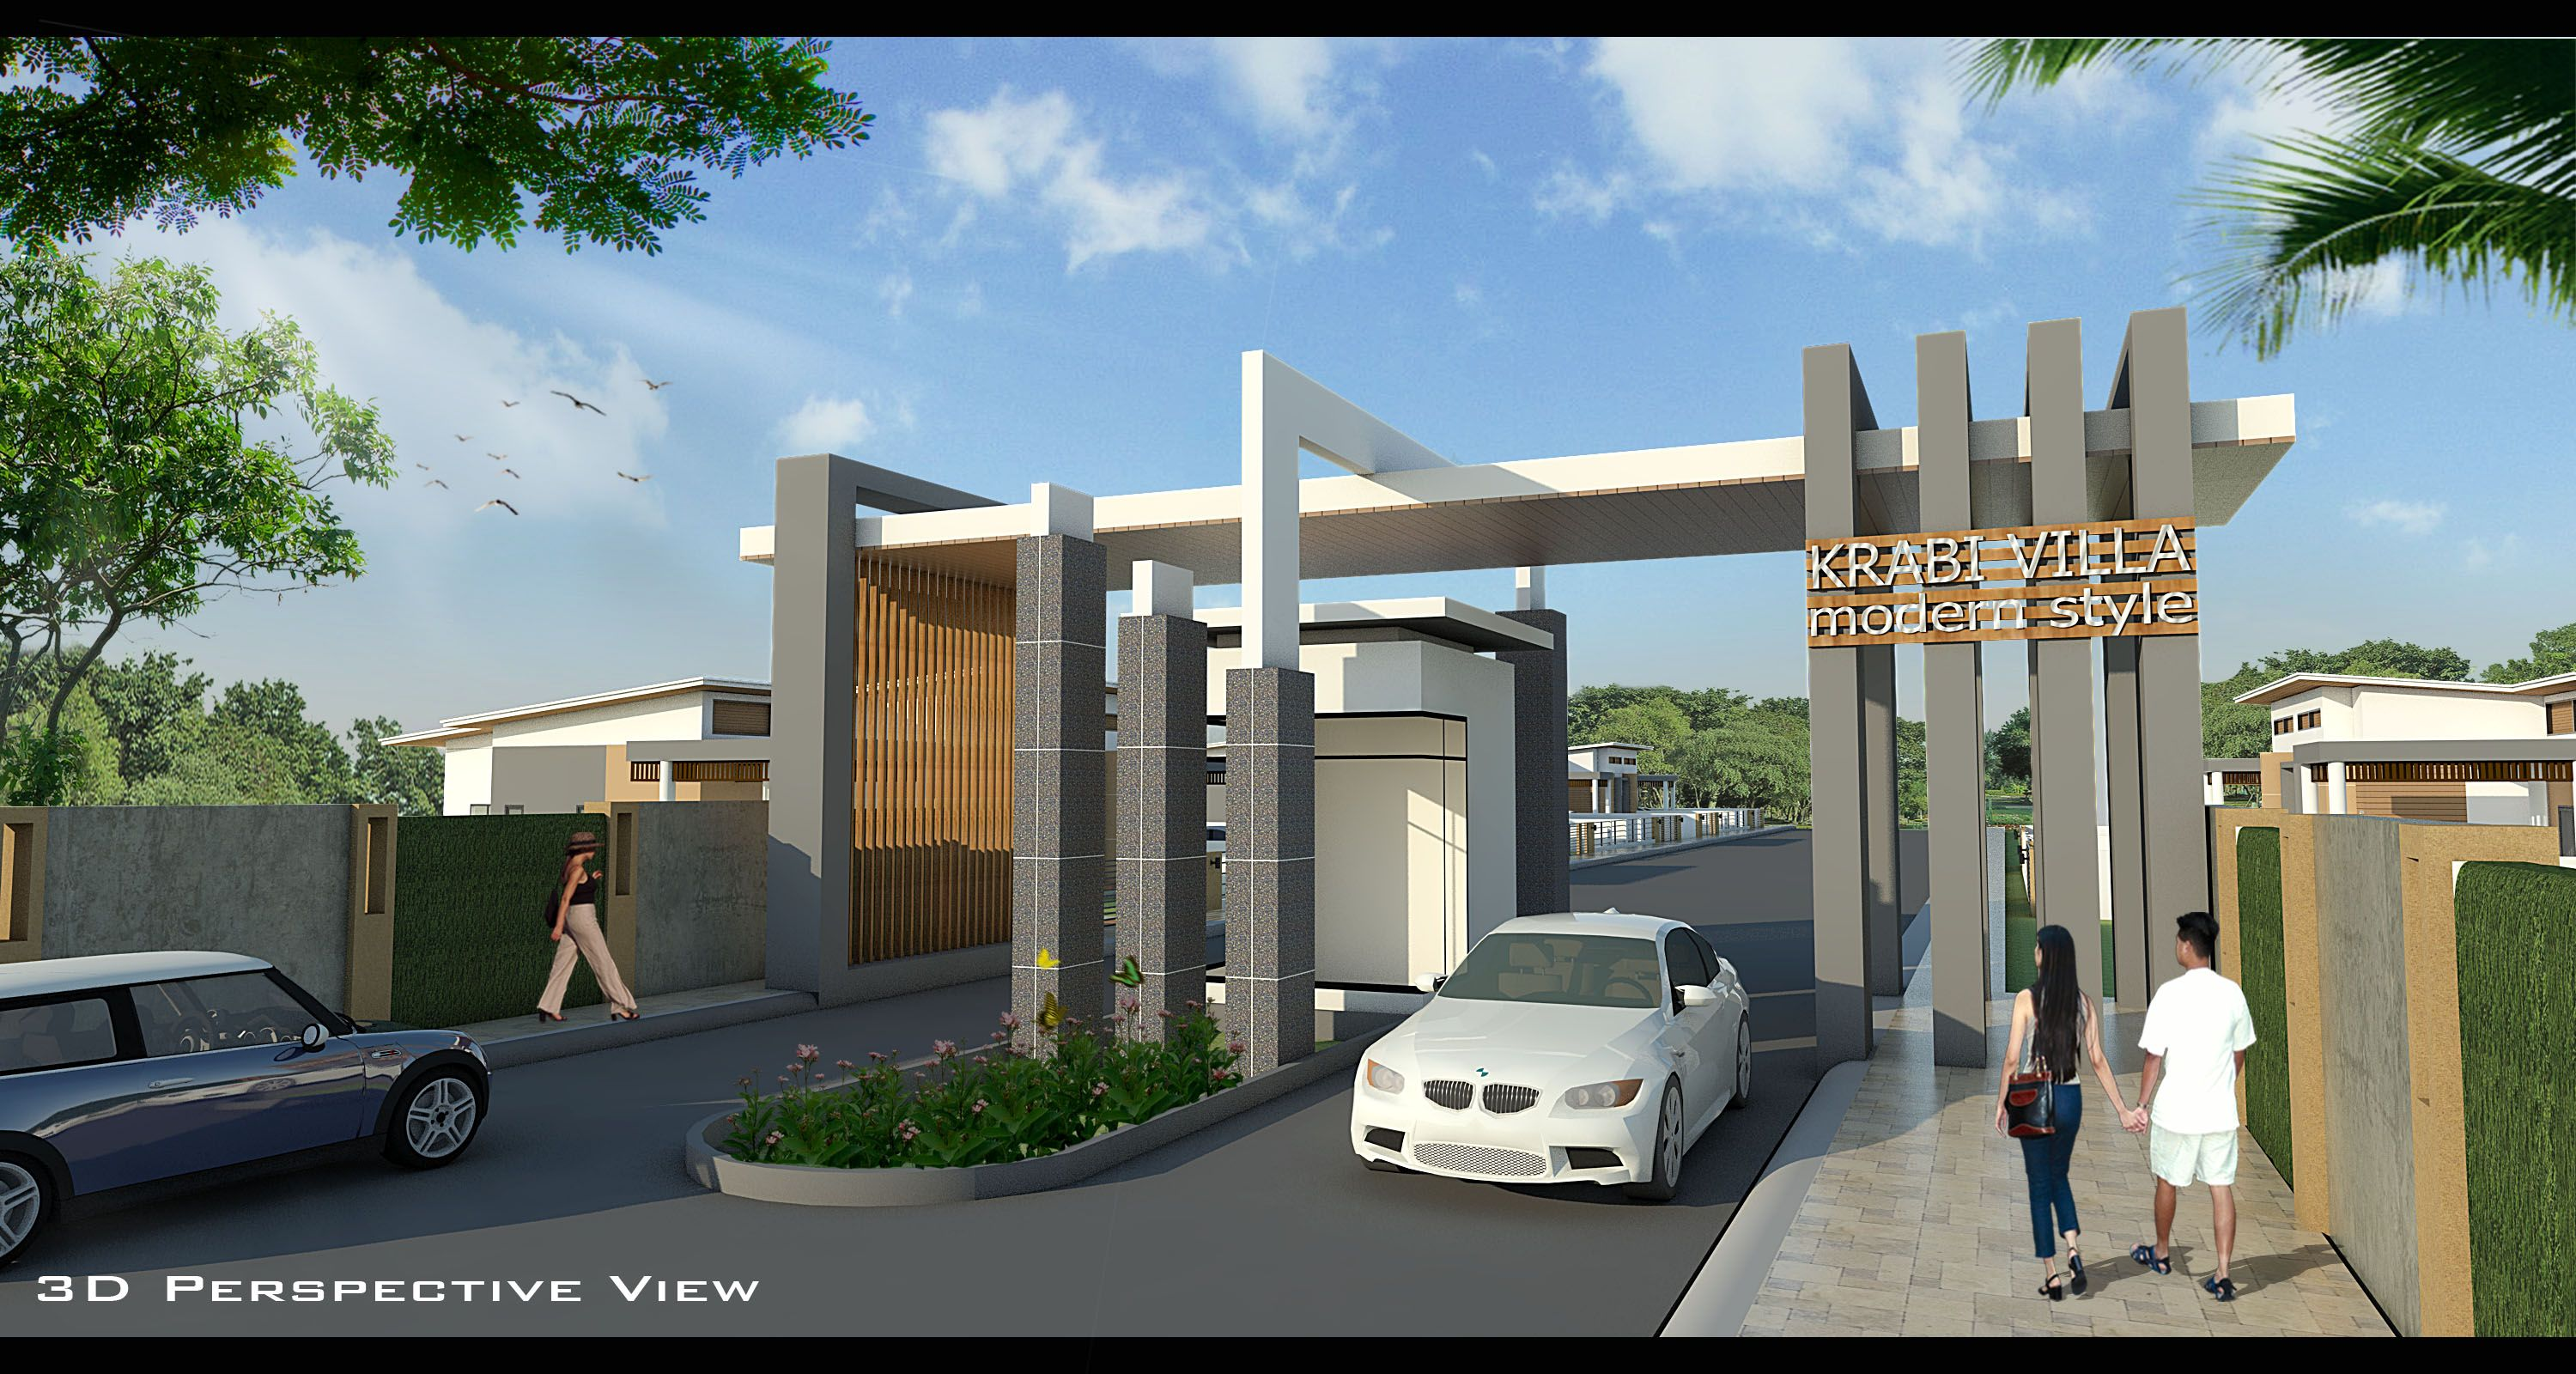 Pin By Samuel Gitonga On Arch Entrance Gate Entrance Gates Design Gate Wall Design Fence Gate Design